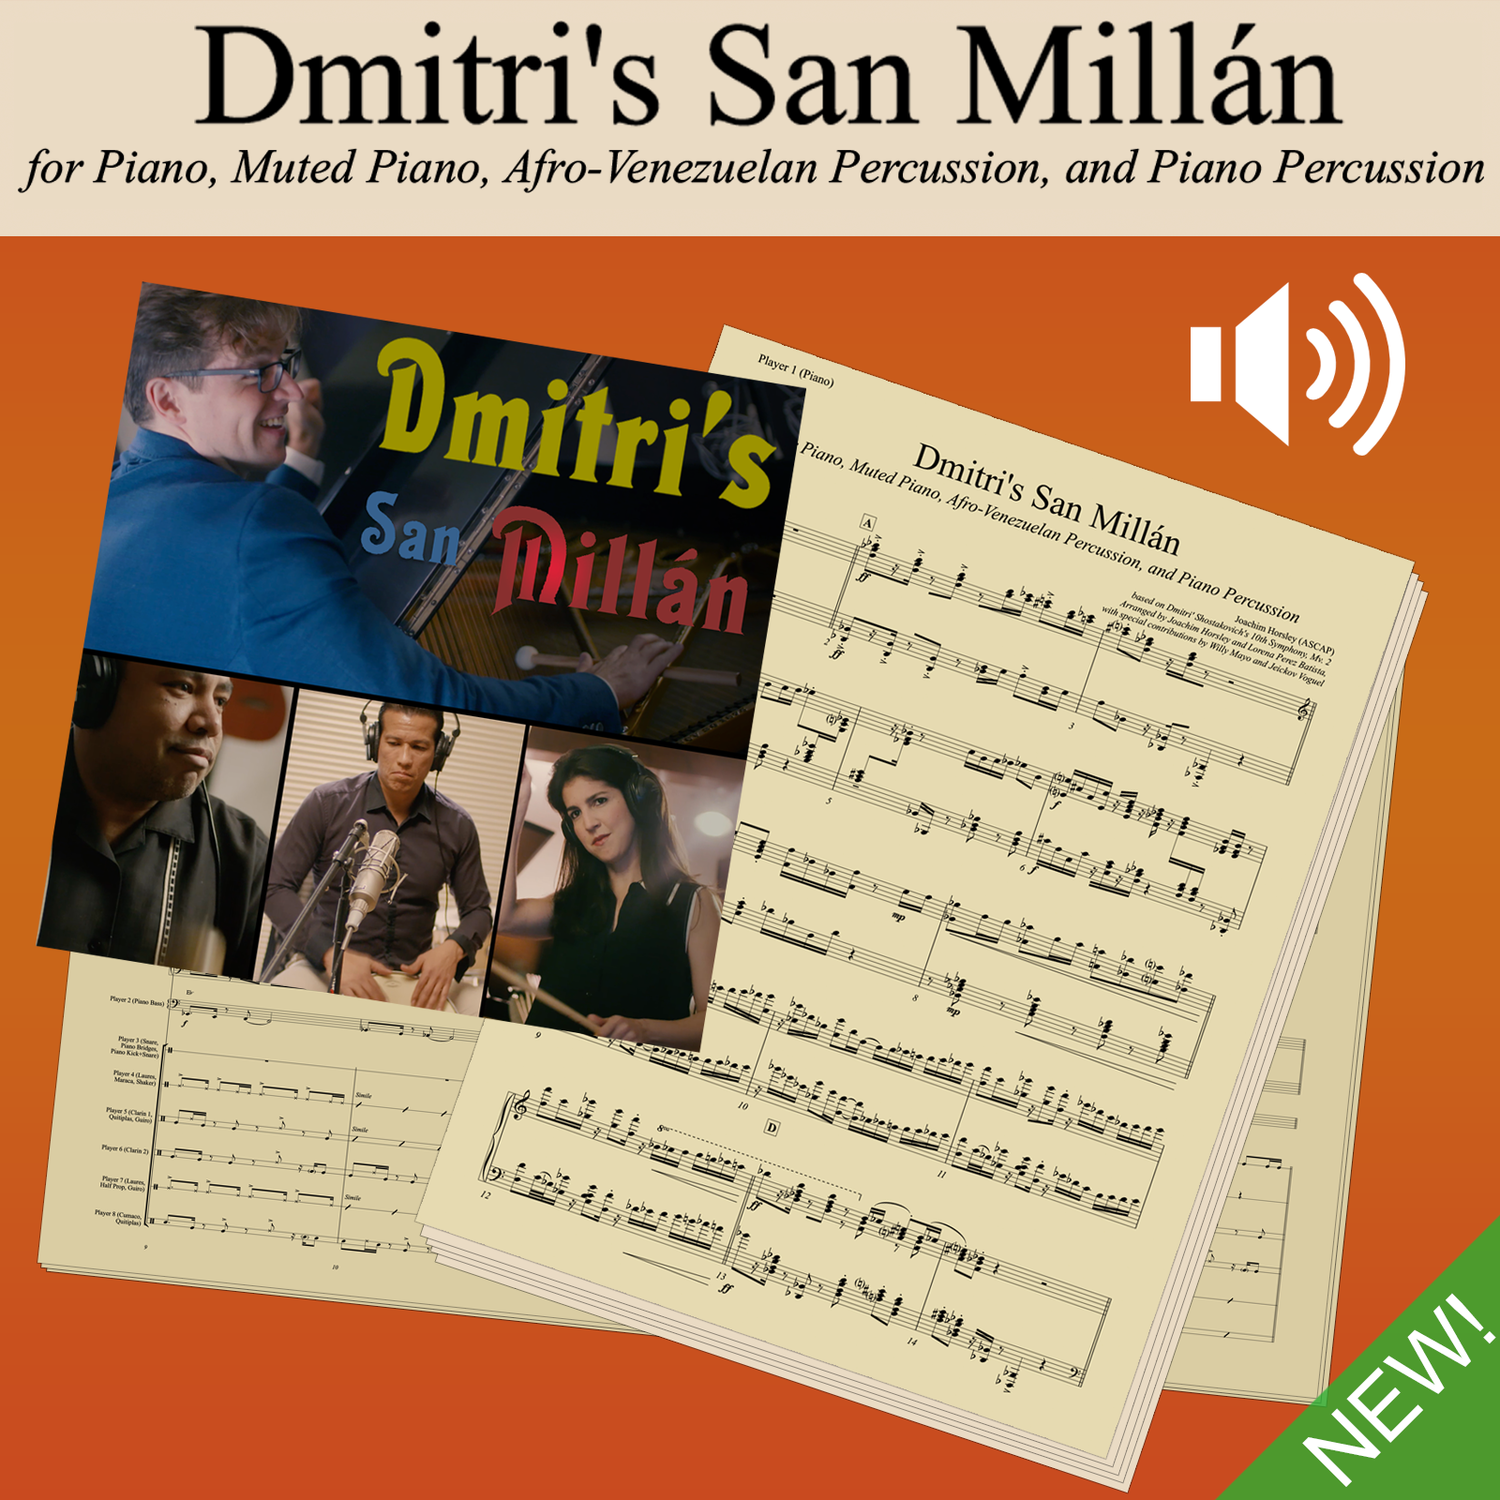 Dmitri's San Millán - Score, Parts, and Play-Along Audio